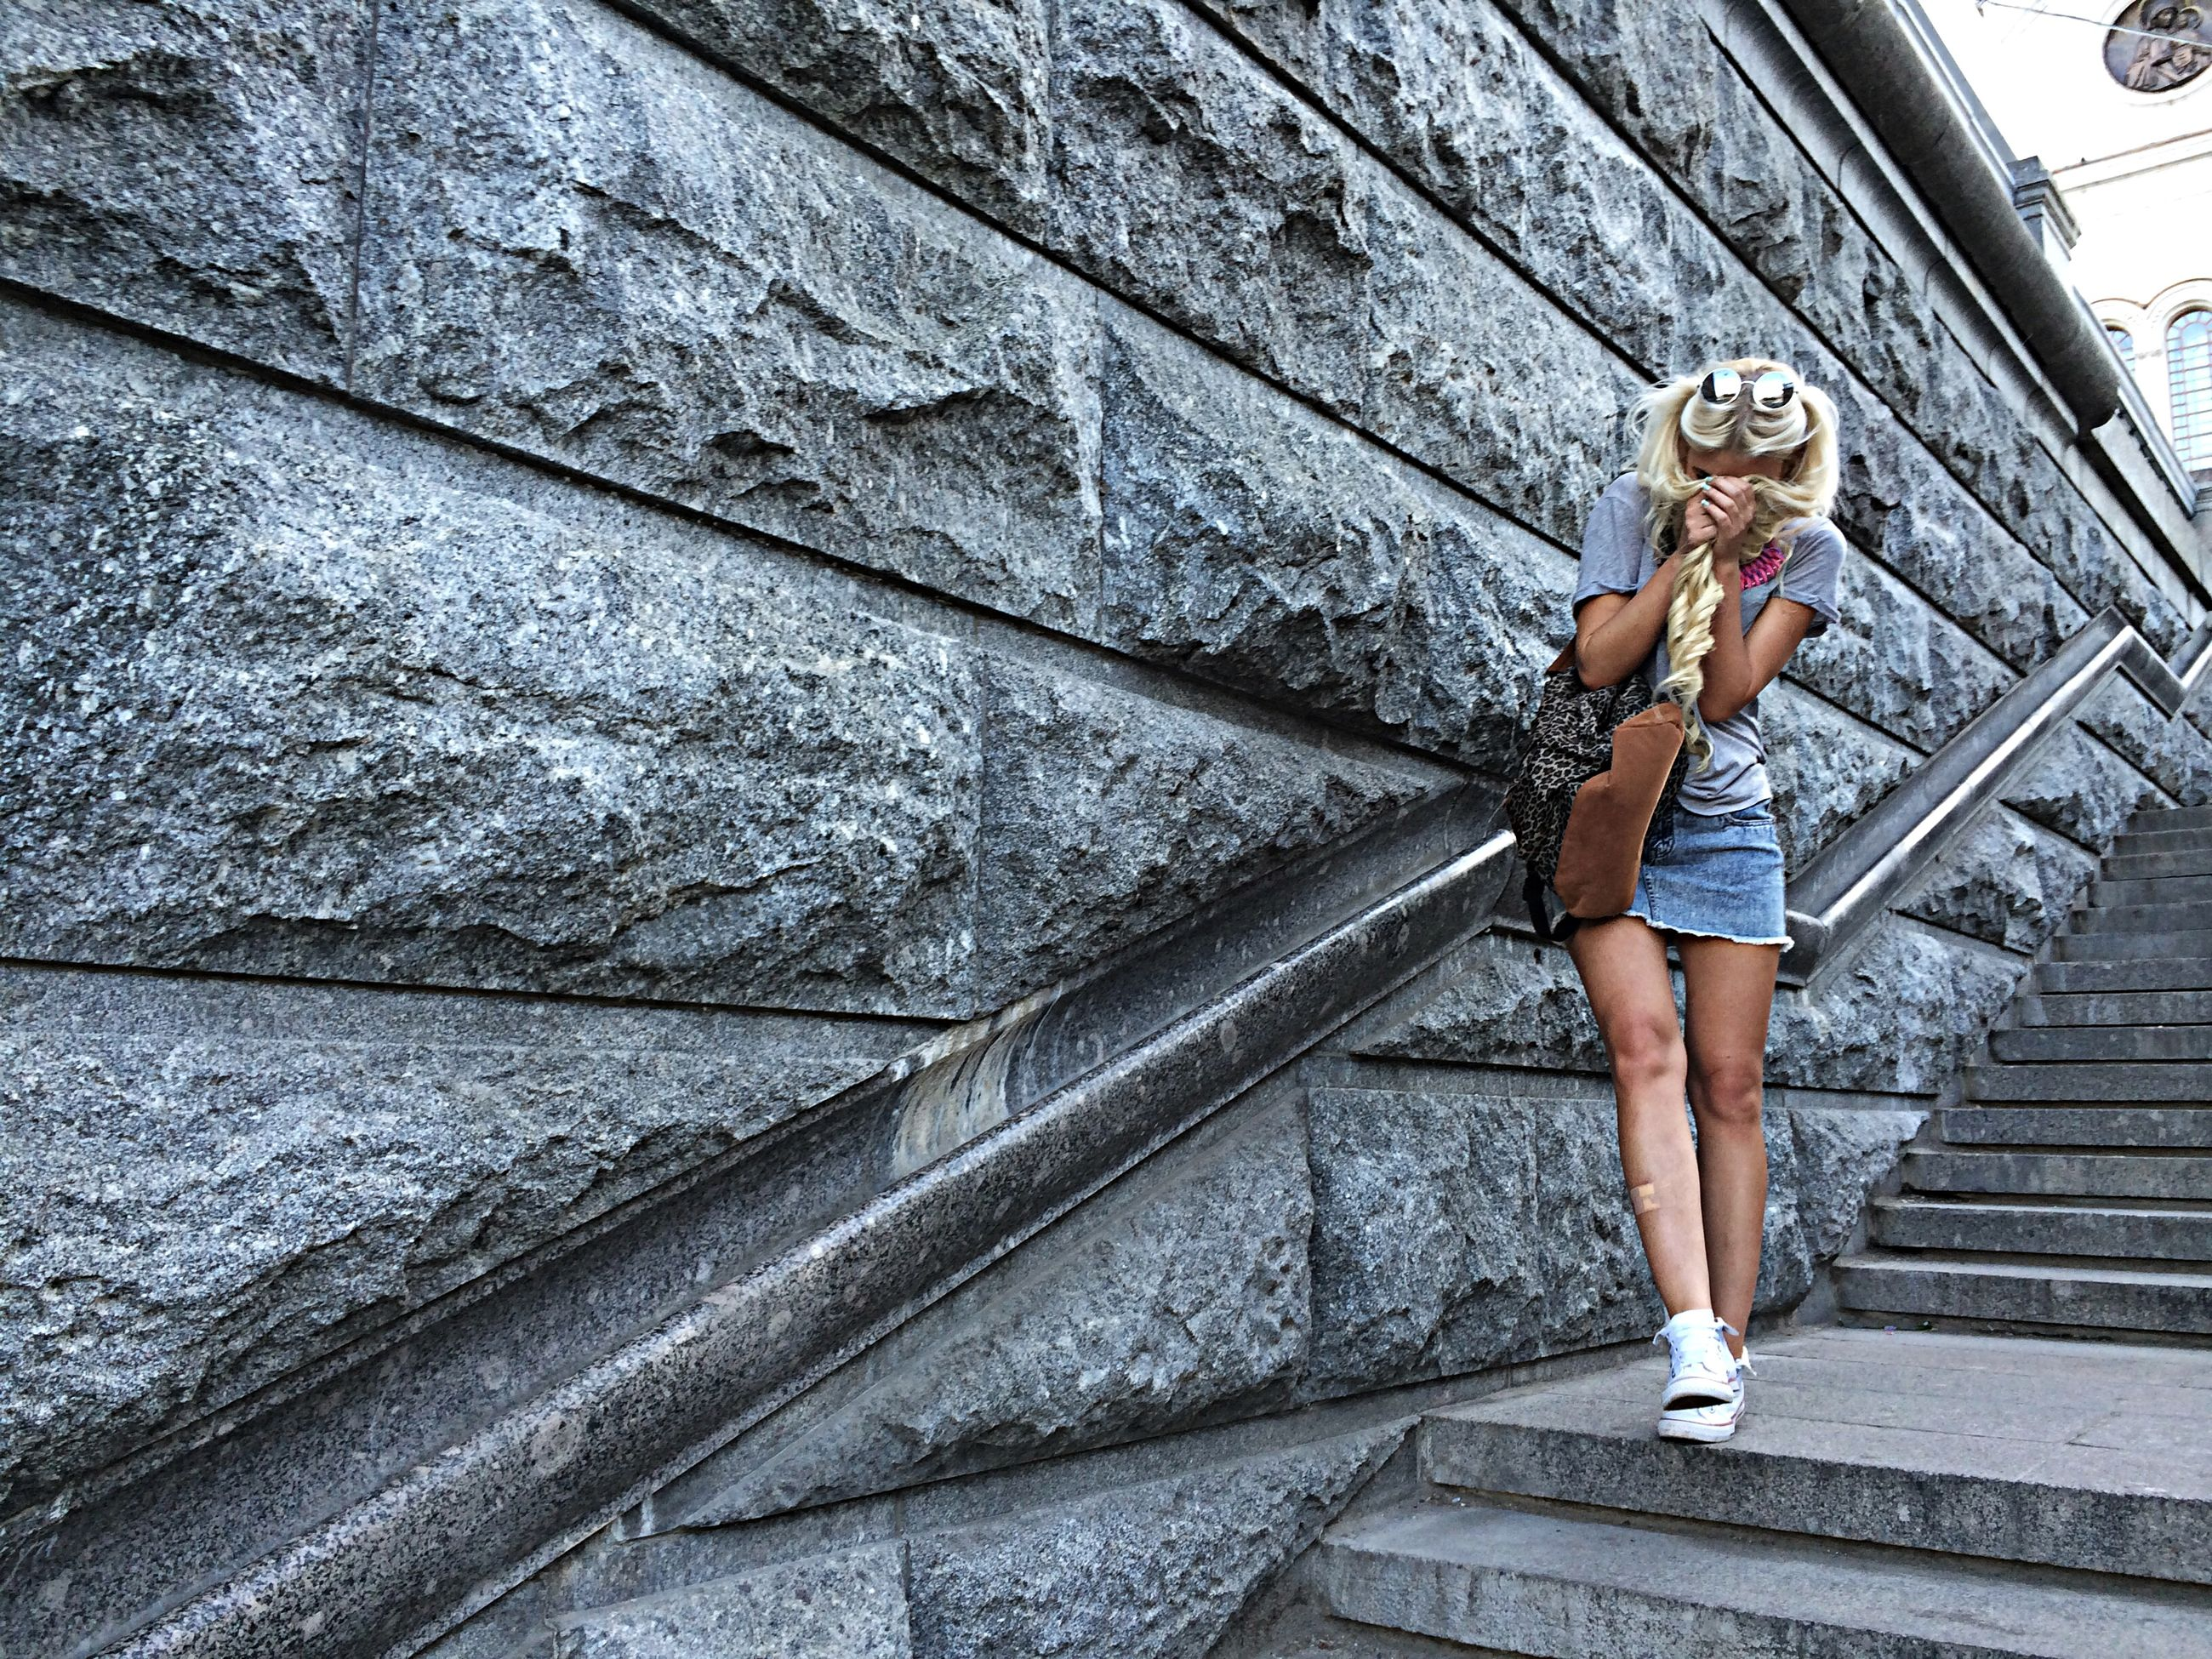 full length, lifestyles, young adult, casual clothing, standing, built structure, architecture, wall - building feature, person, leisure activity, young women, front view, steps, day, building exterior, outdoors, low angle view, side view